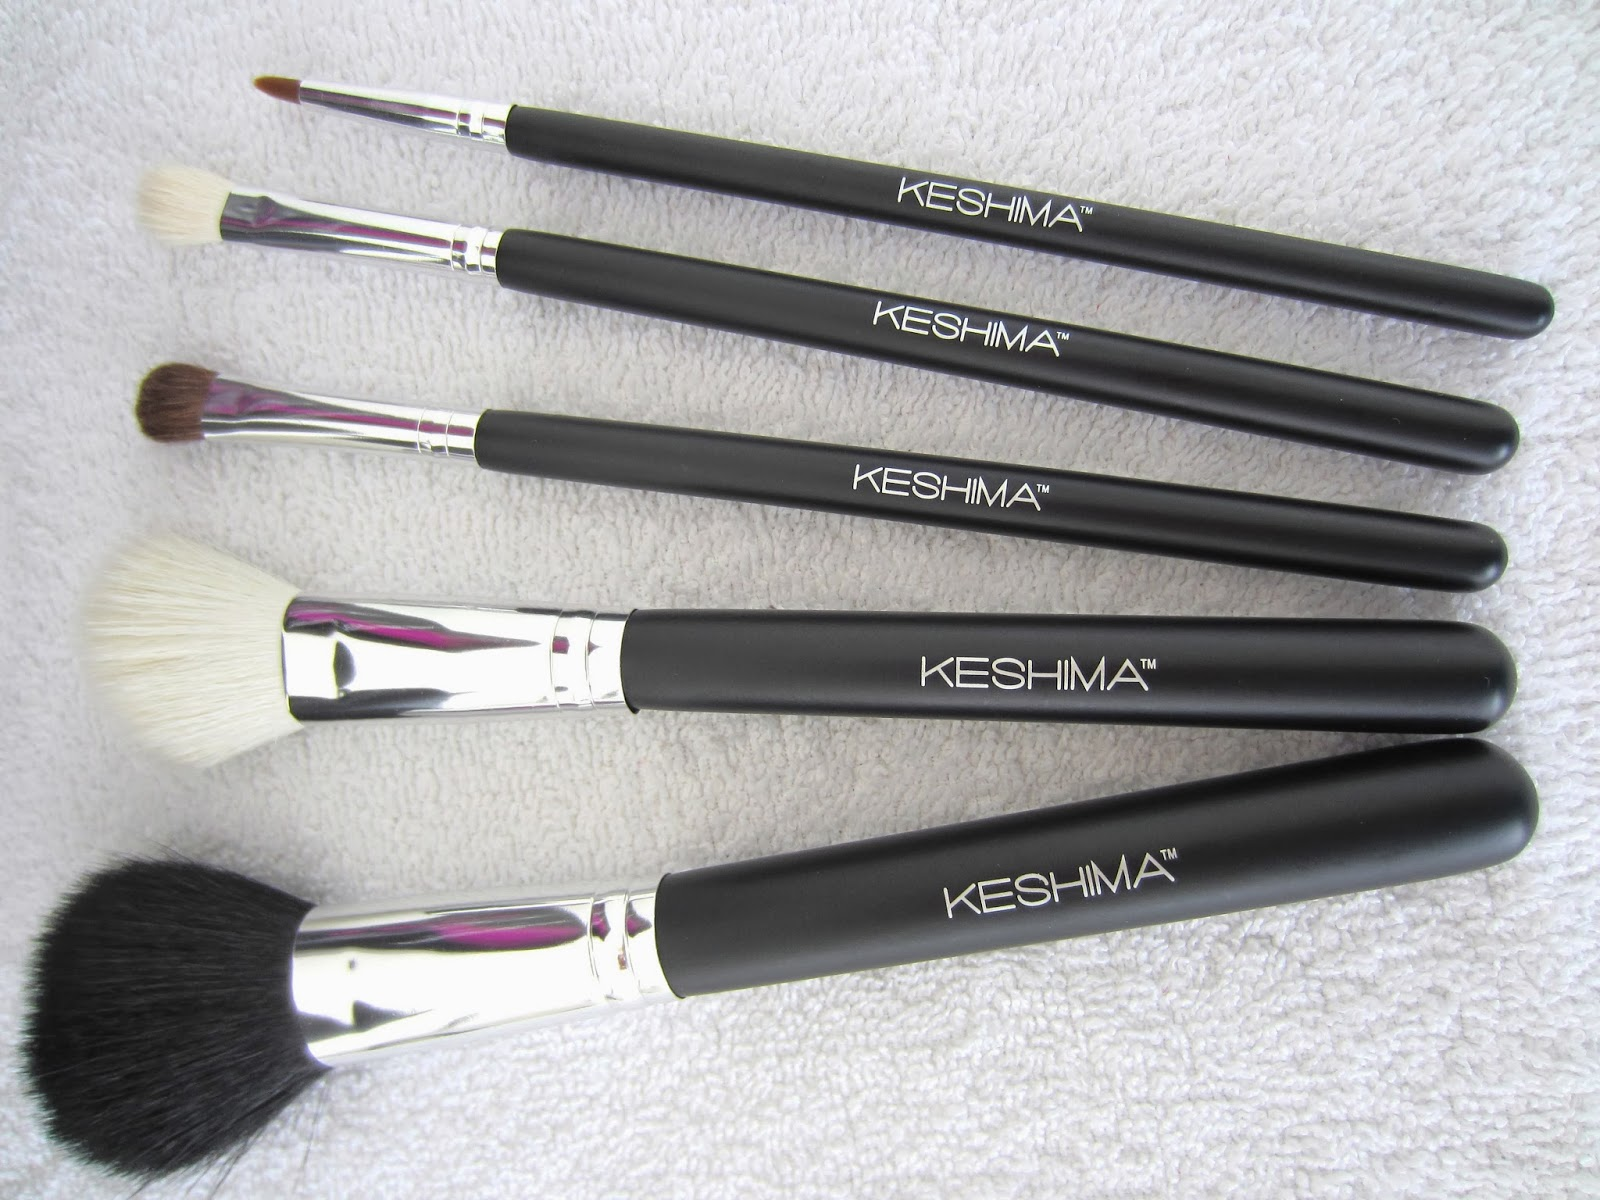 Style, Decor & More: Quality KESHIMA Make-Up Brushes {REVIEW}